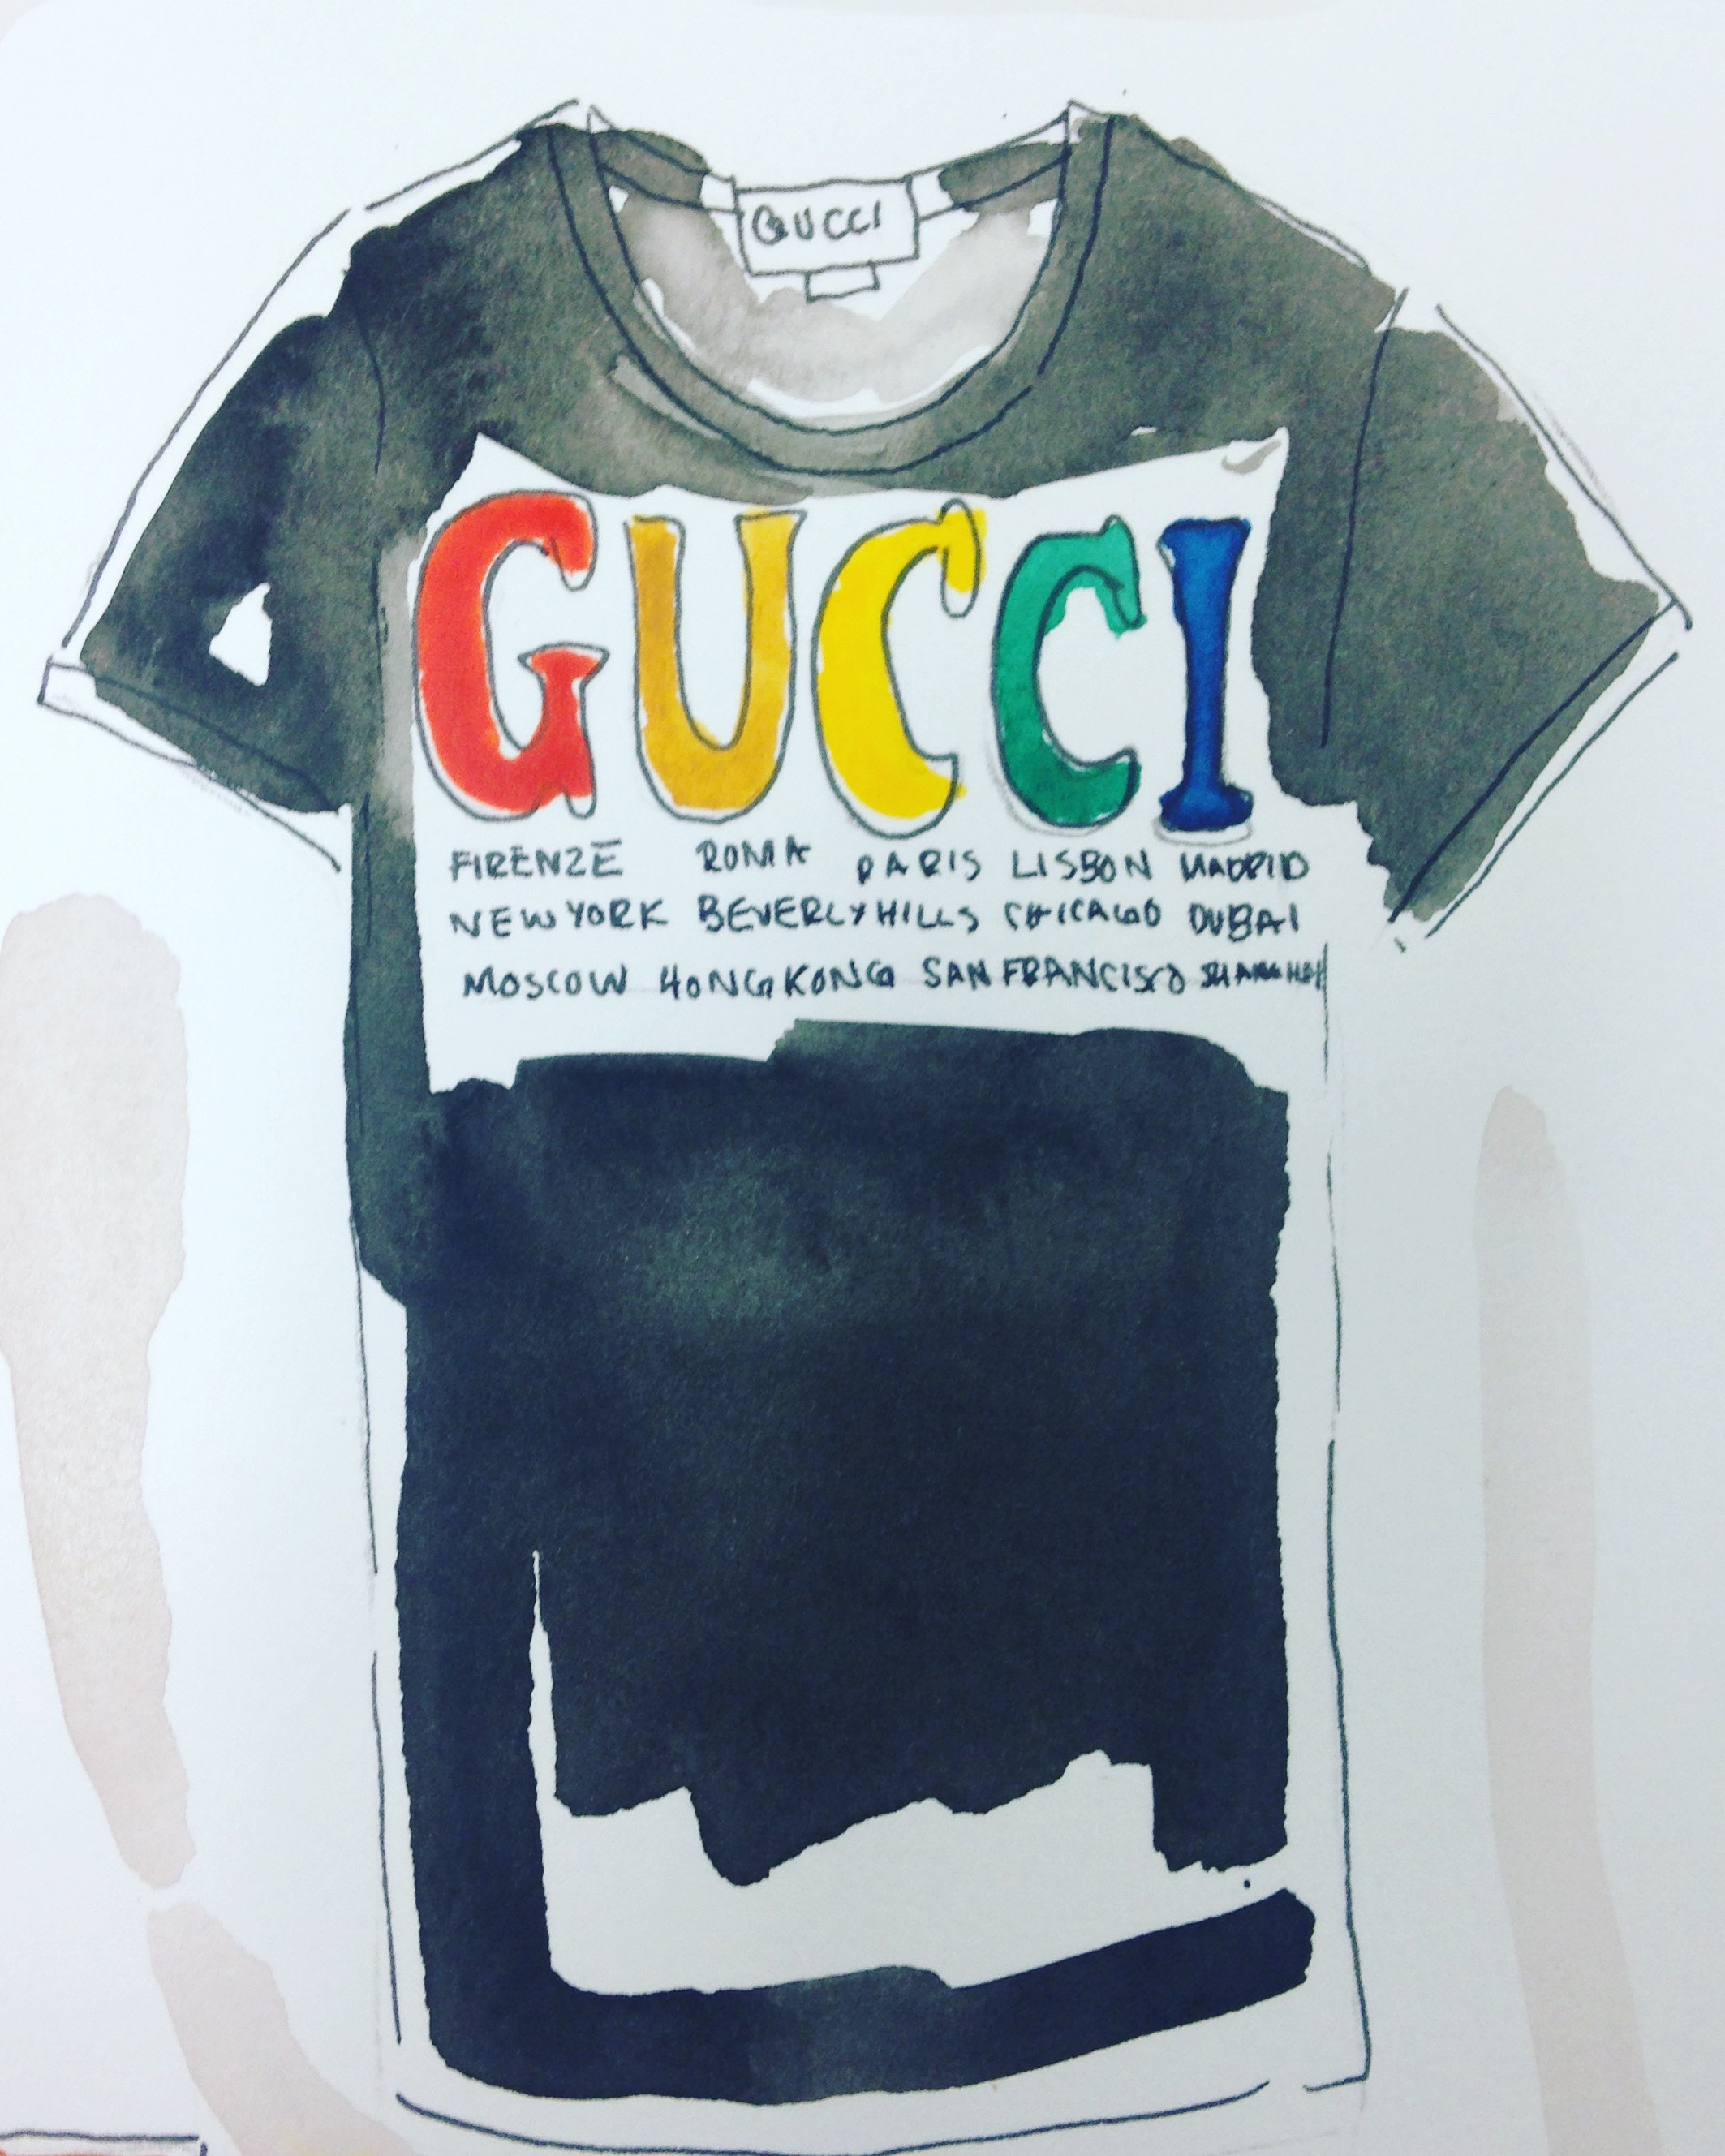 Gucci Cities cotton t-shirt available  here .